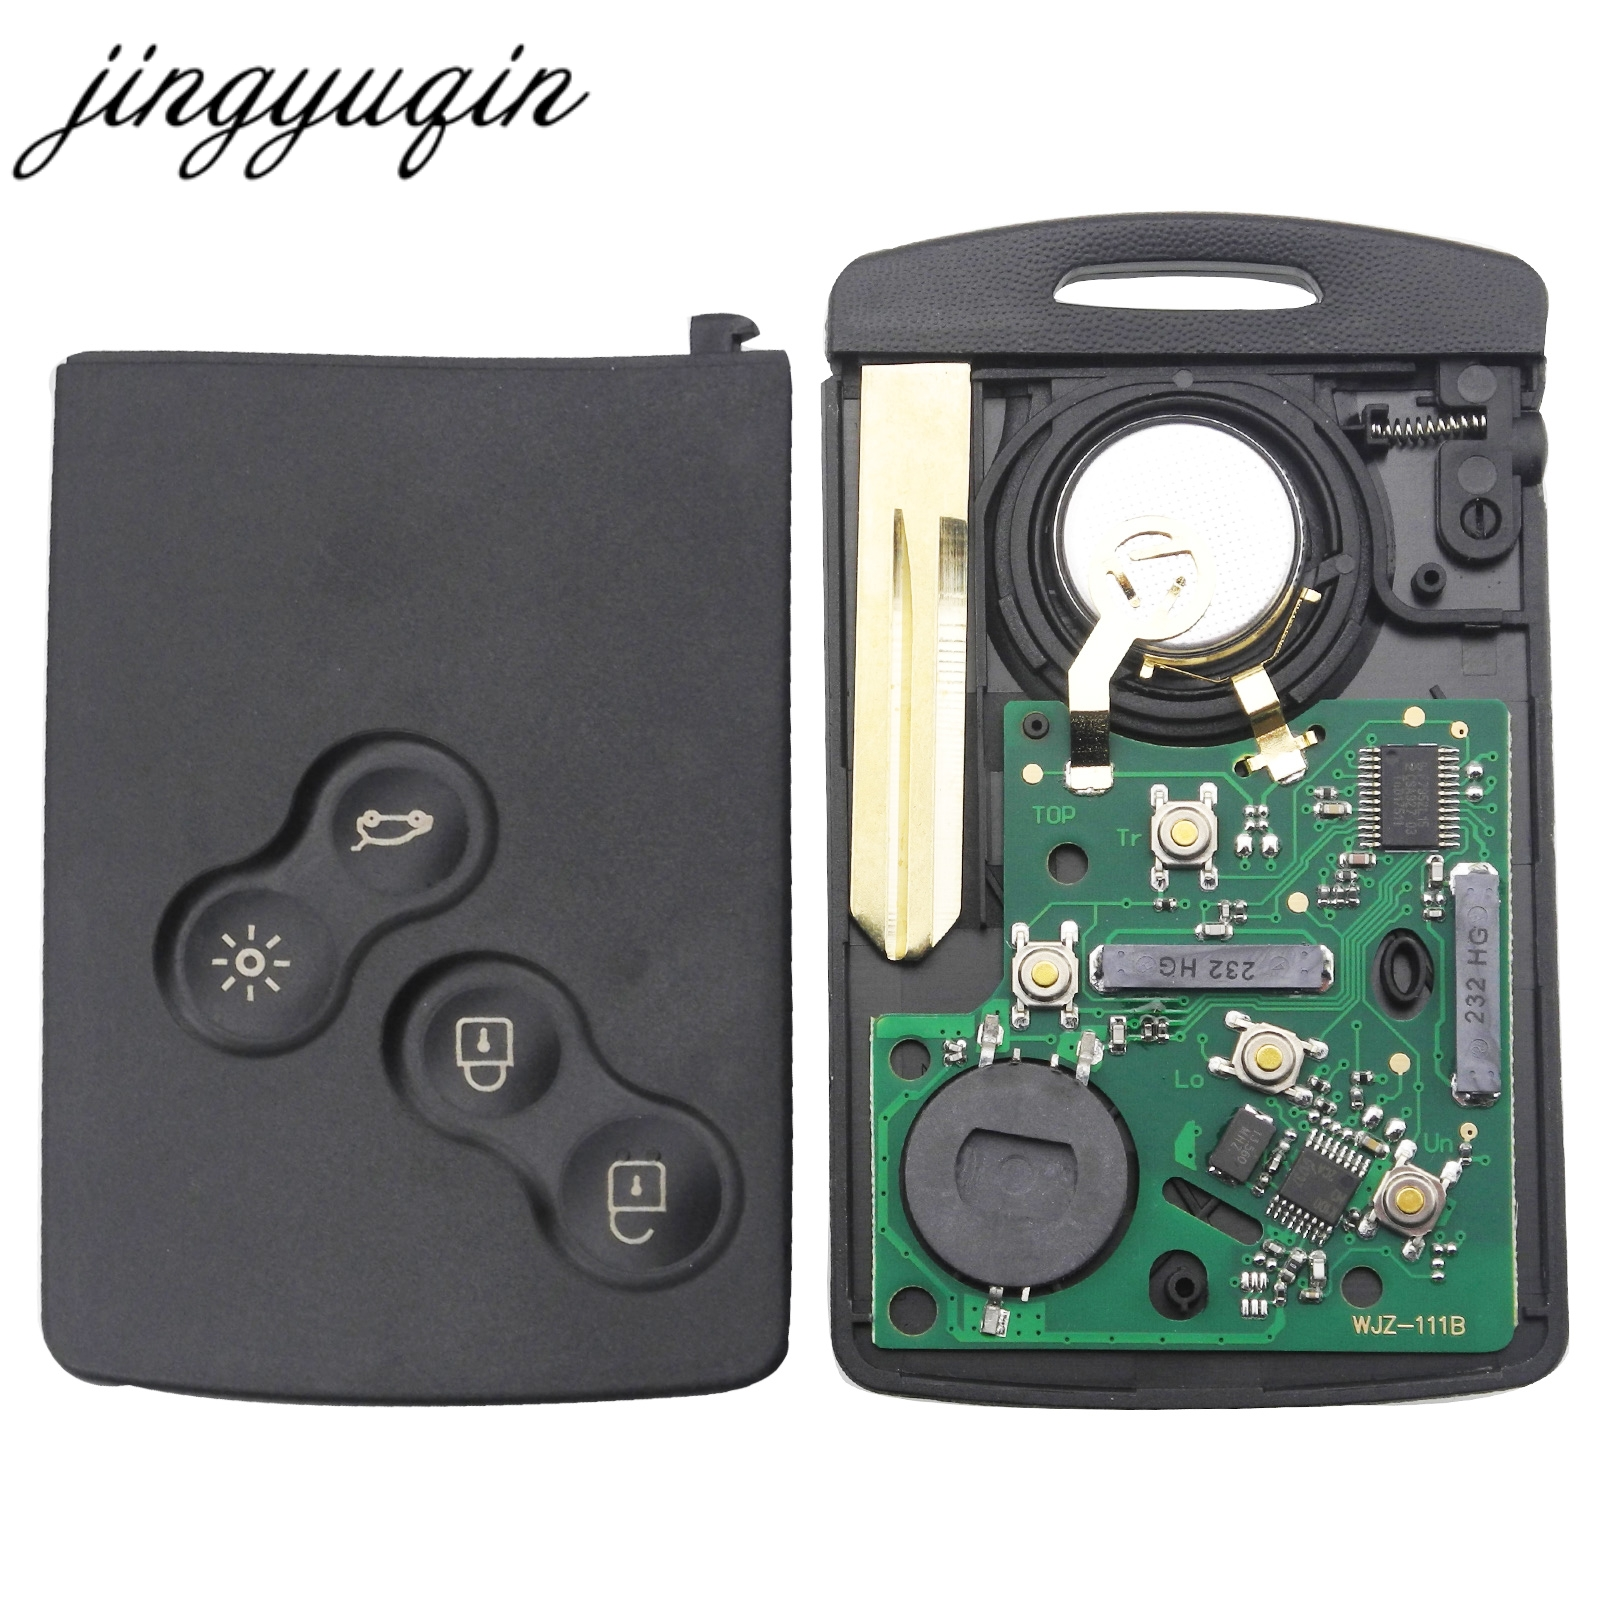 jingyuqin Car Key Card Fob 433MHZ PCF7952 Chip for Renault Megane Scenic Laguna Koleos Clio Uncut Blade 4 Button Remote Key jingyuqin new 1 button uncut blade remote car key shell for renault twingo clio kangoo master no chip keyless entry fob case page 2